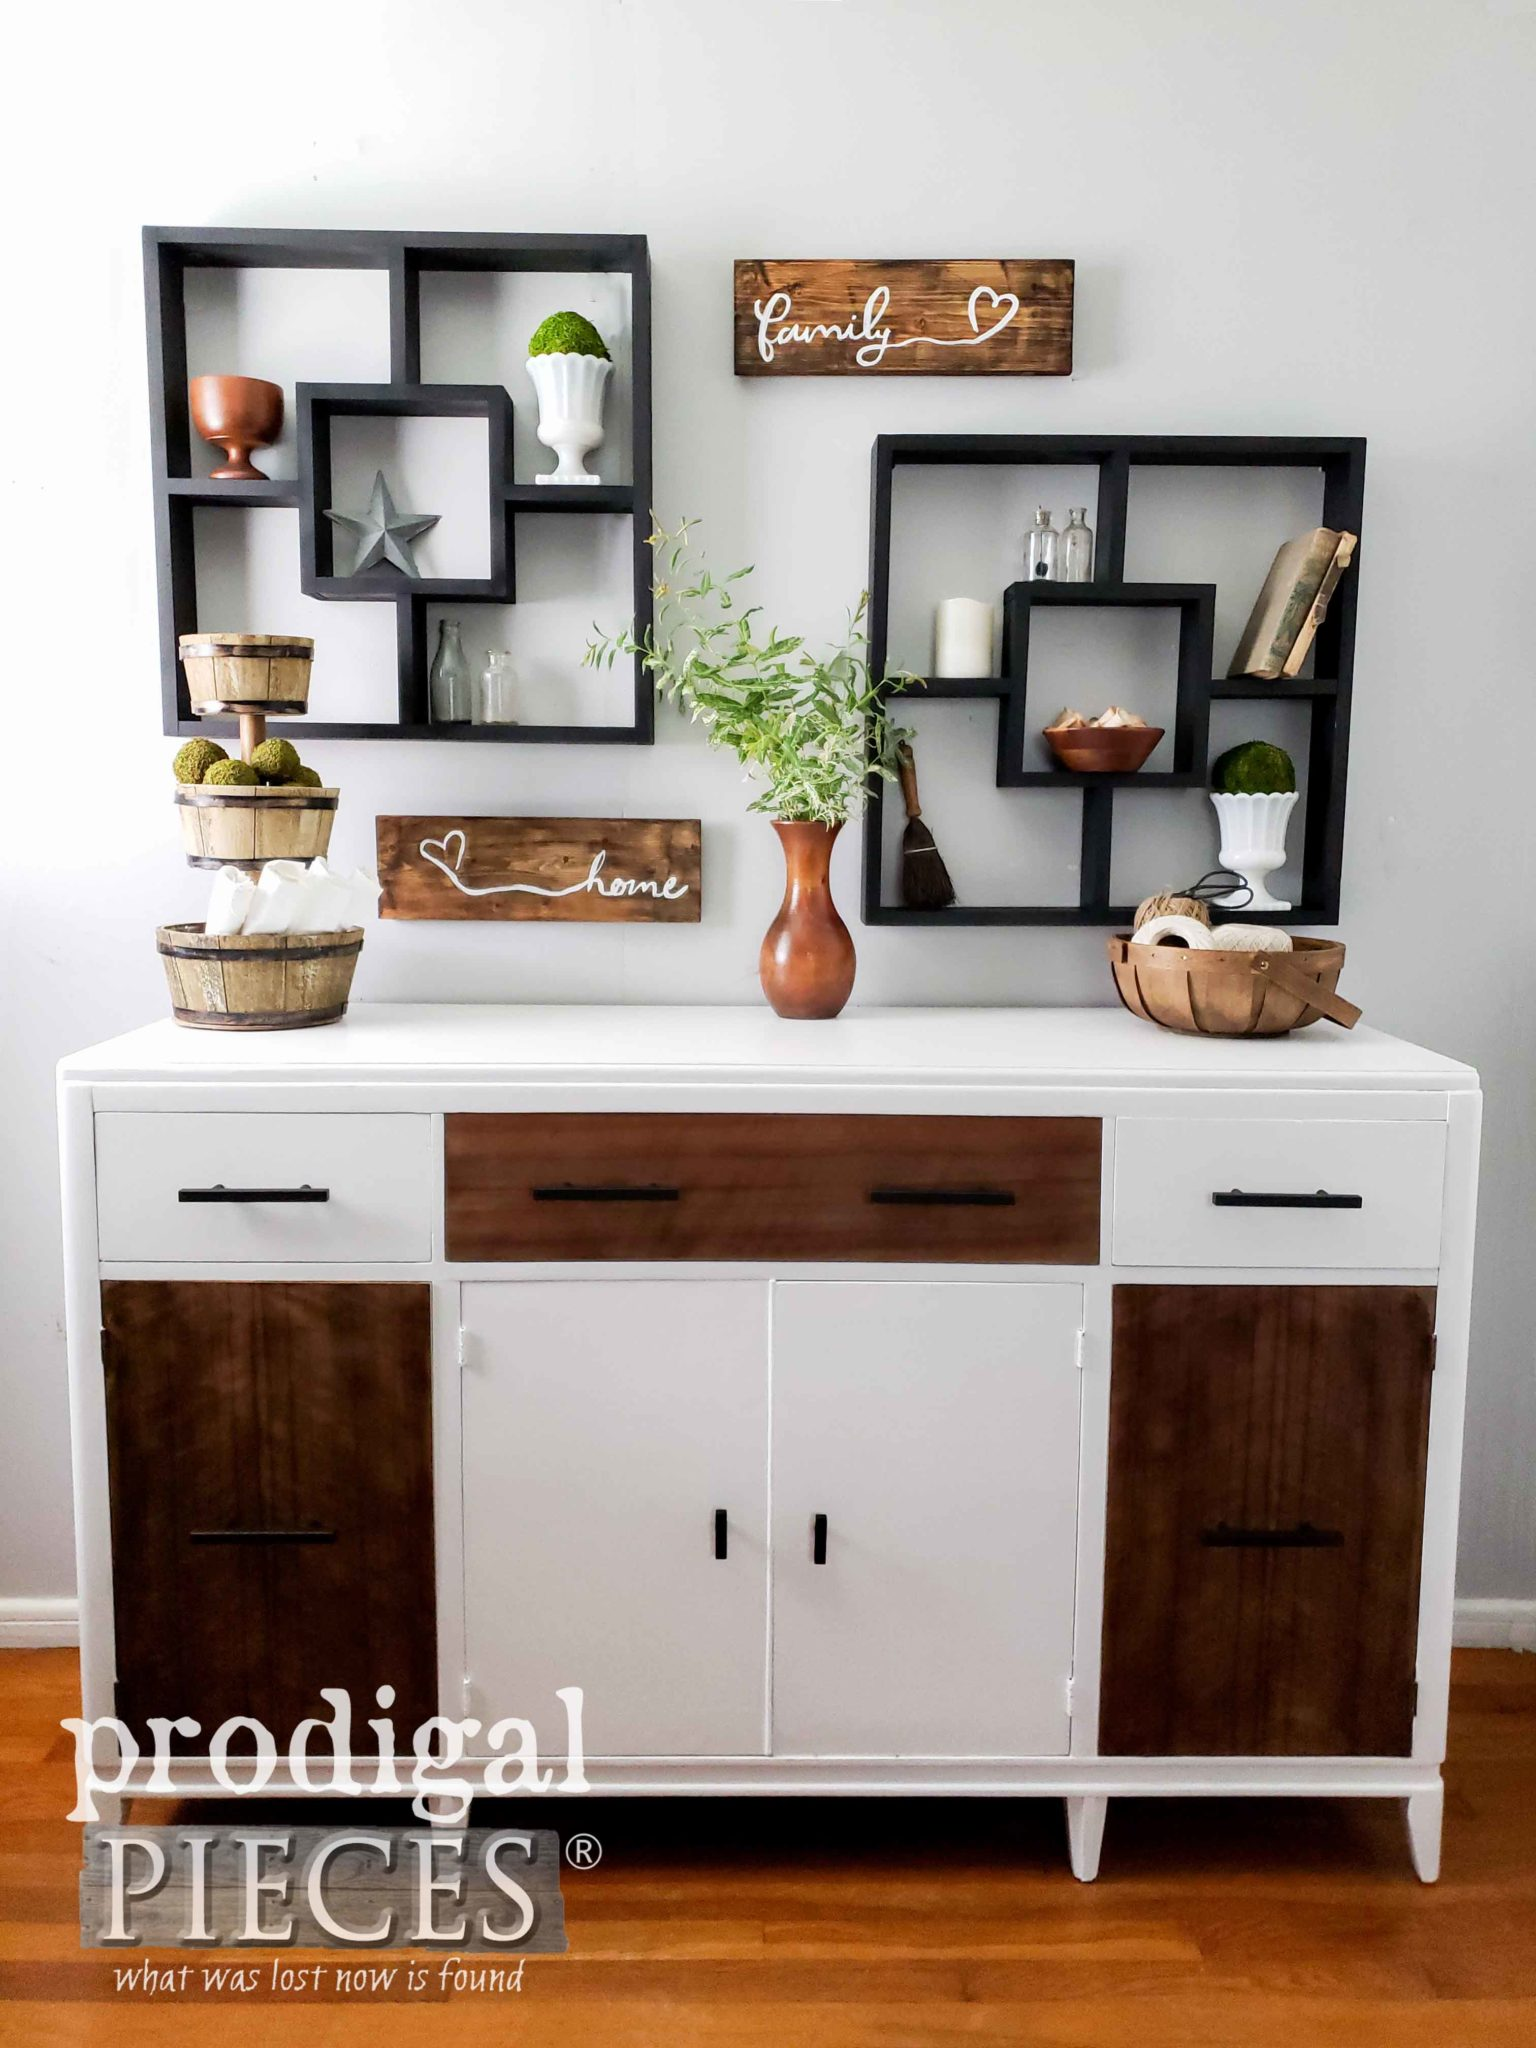 Modern Farmhouse Chic Buffet with White and Wood Tones by Larissa of Prodigal Pieces | prodigalpieces.com #prodigalpieces #homedecor #diy #shopping #furniture